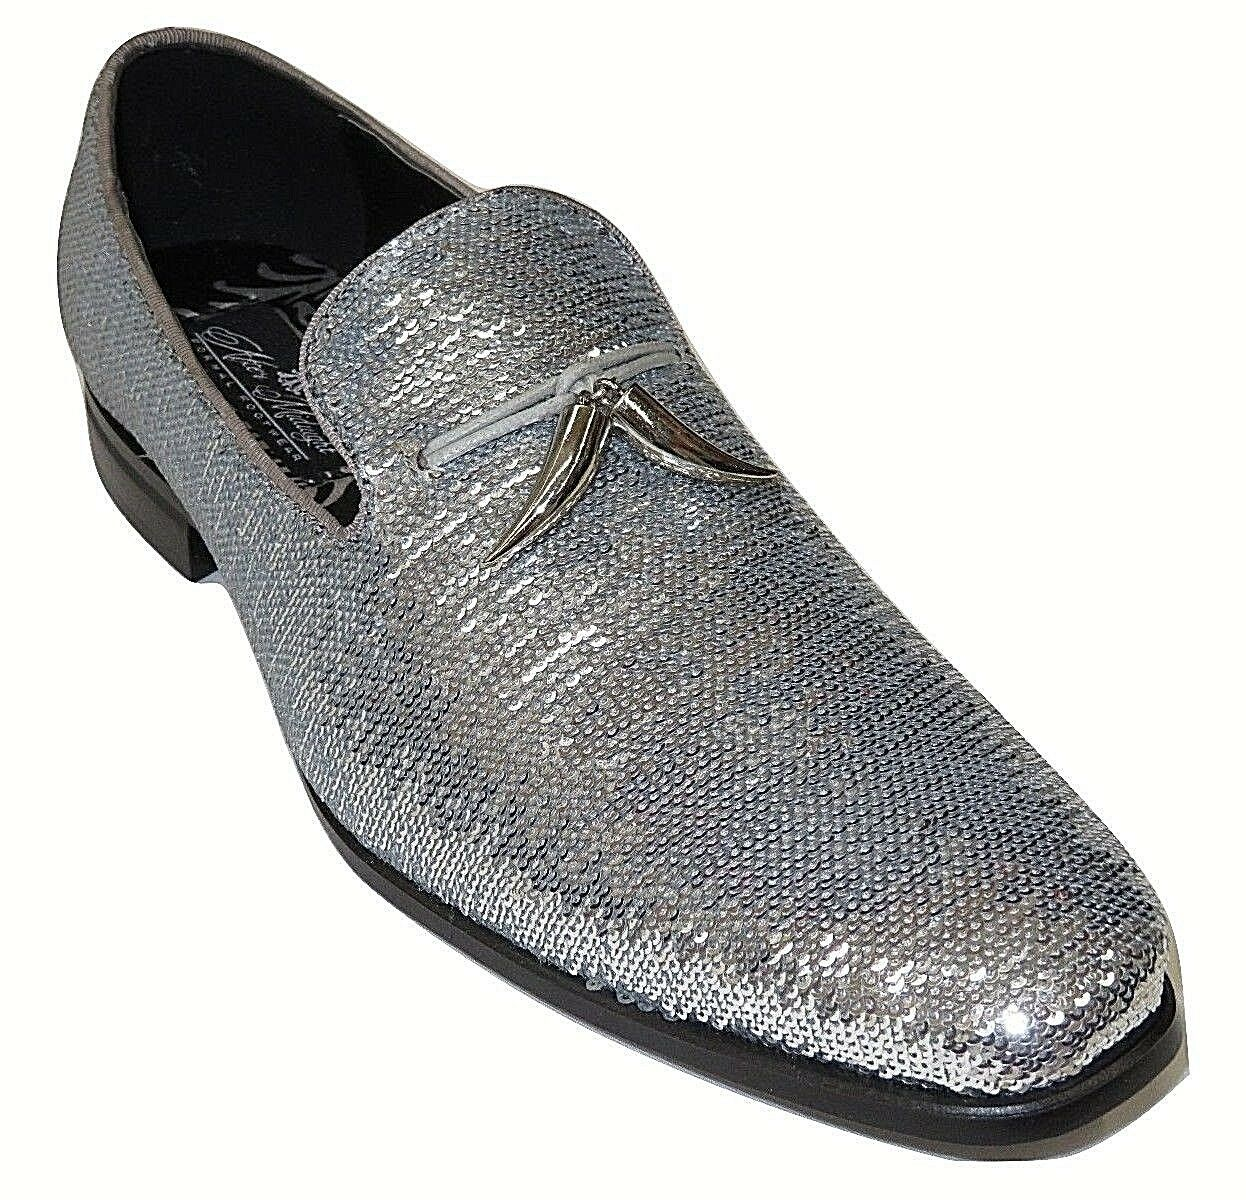 Men AFTER MIDNIGHT Formal Stage Wedding shoes Sequin shiny Slip on 6759 Silver